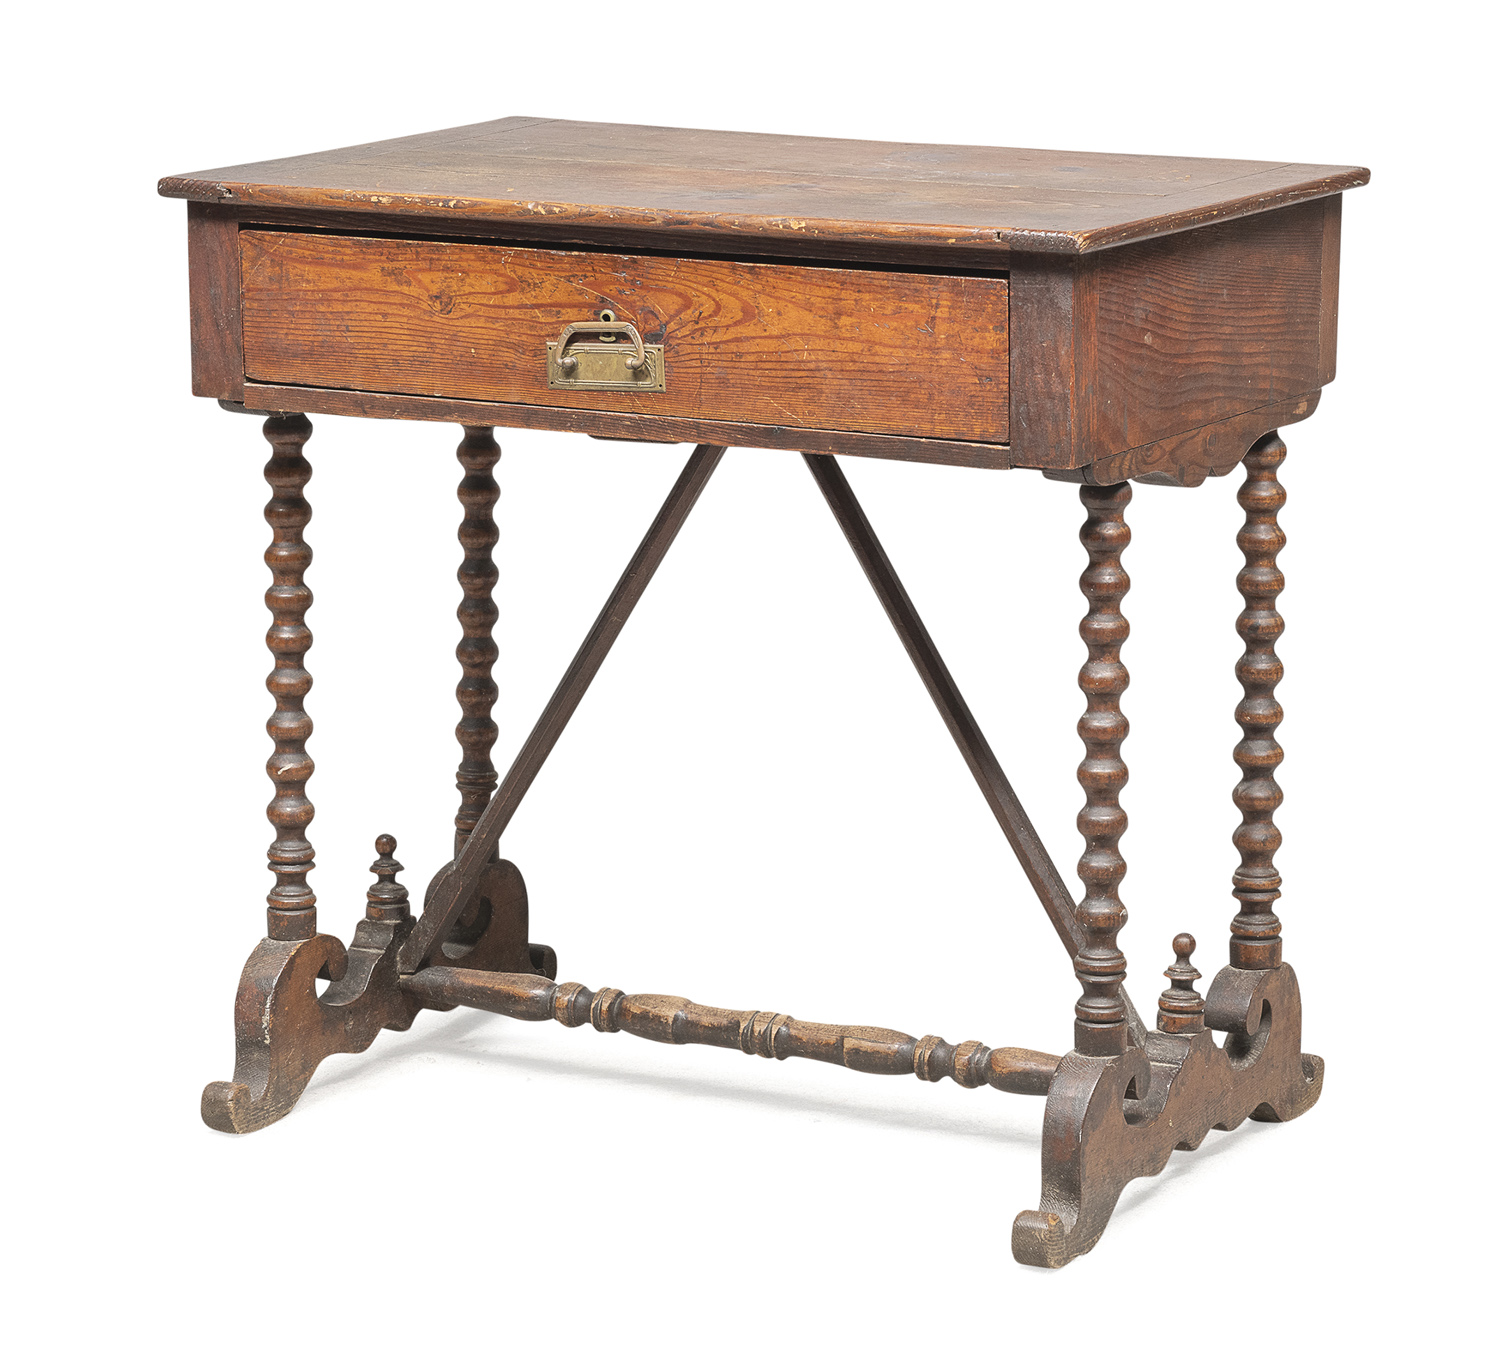 WORK TABLE IN WALNUT STAINED WOOD 19th CENTURY